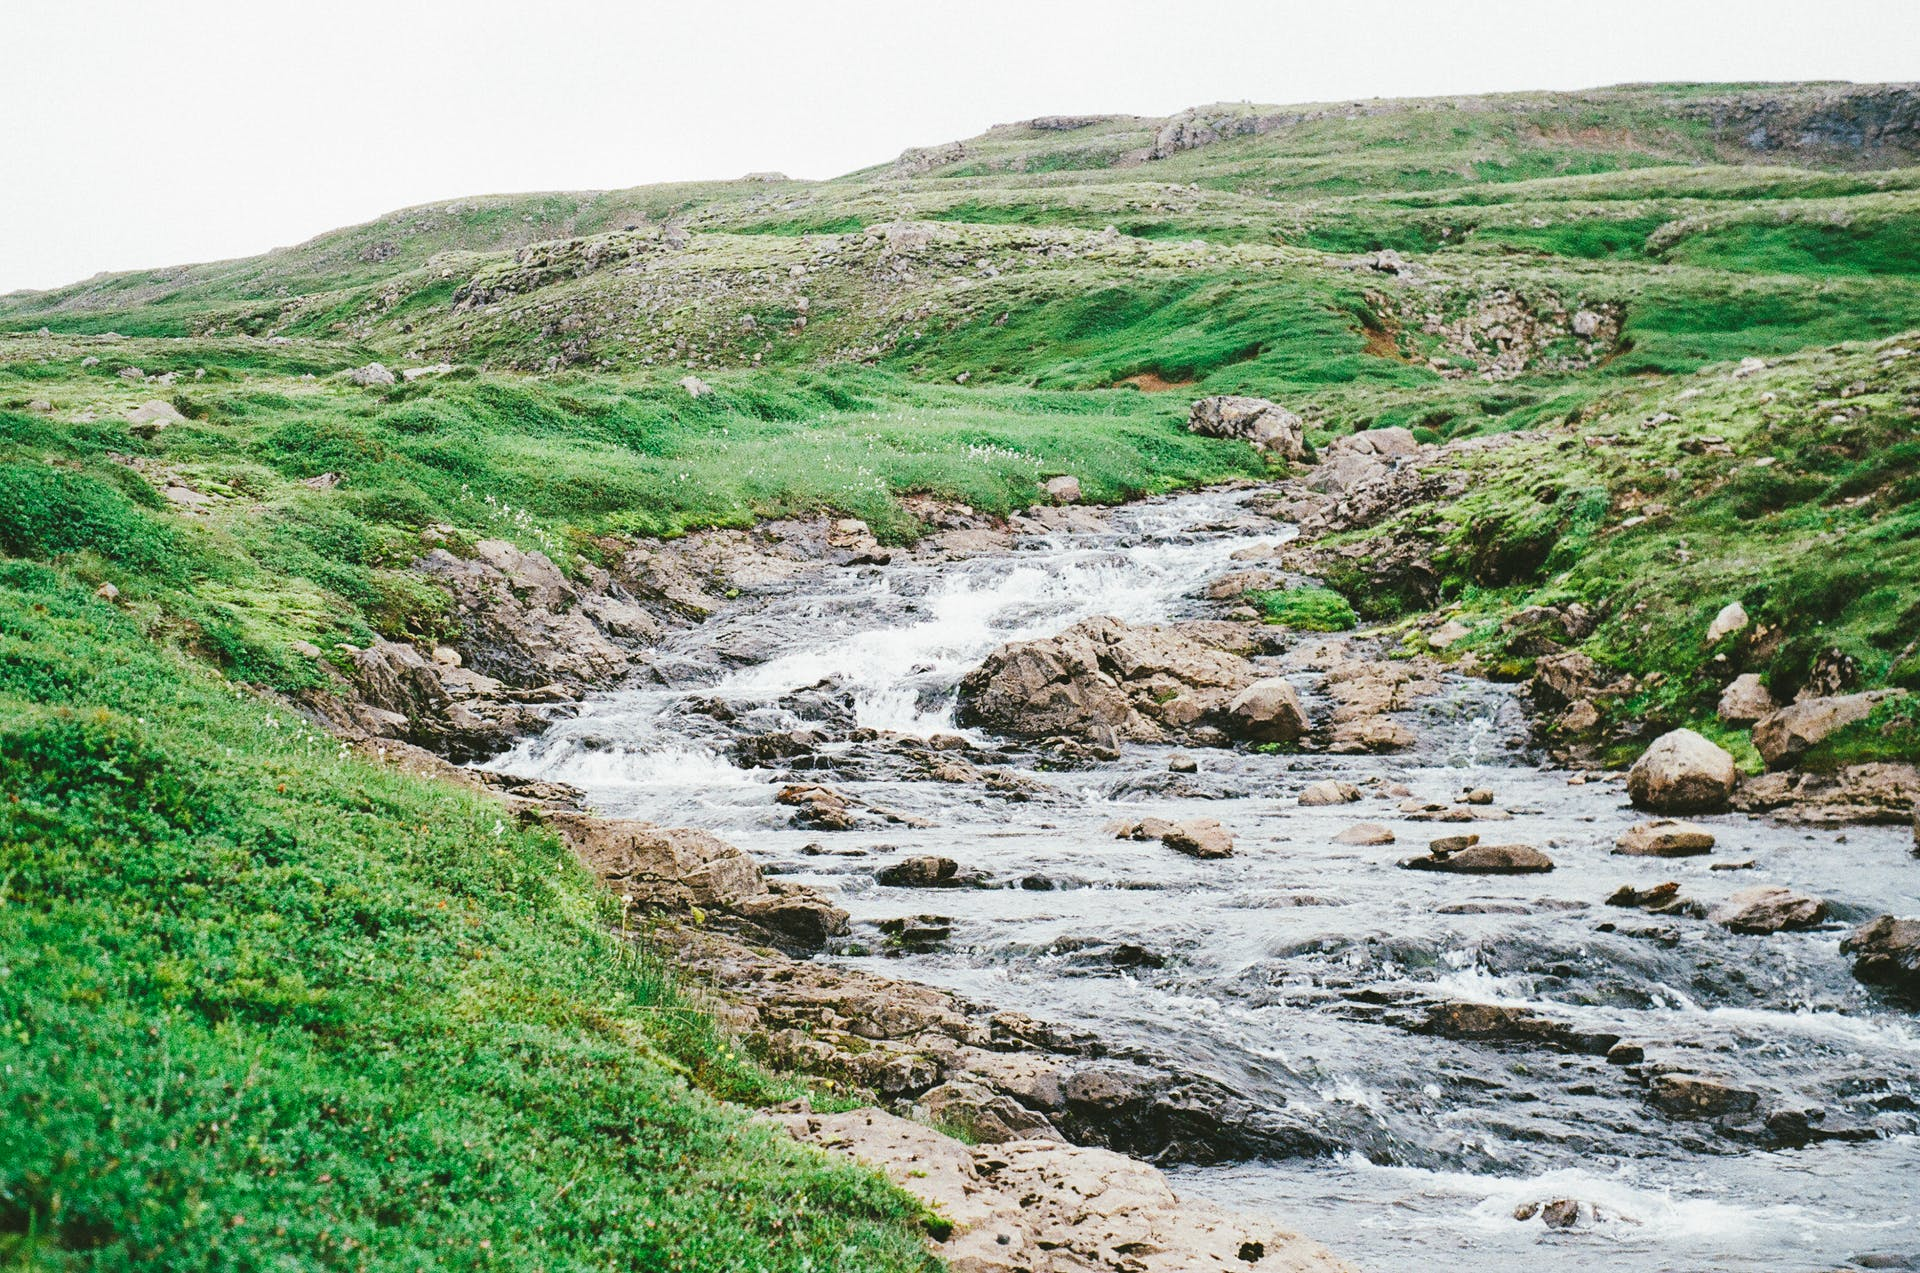 Landscape Photography of River